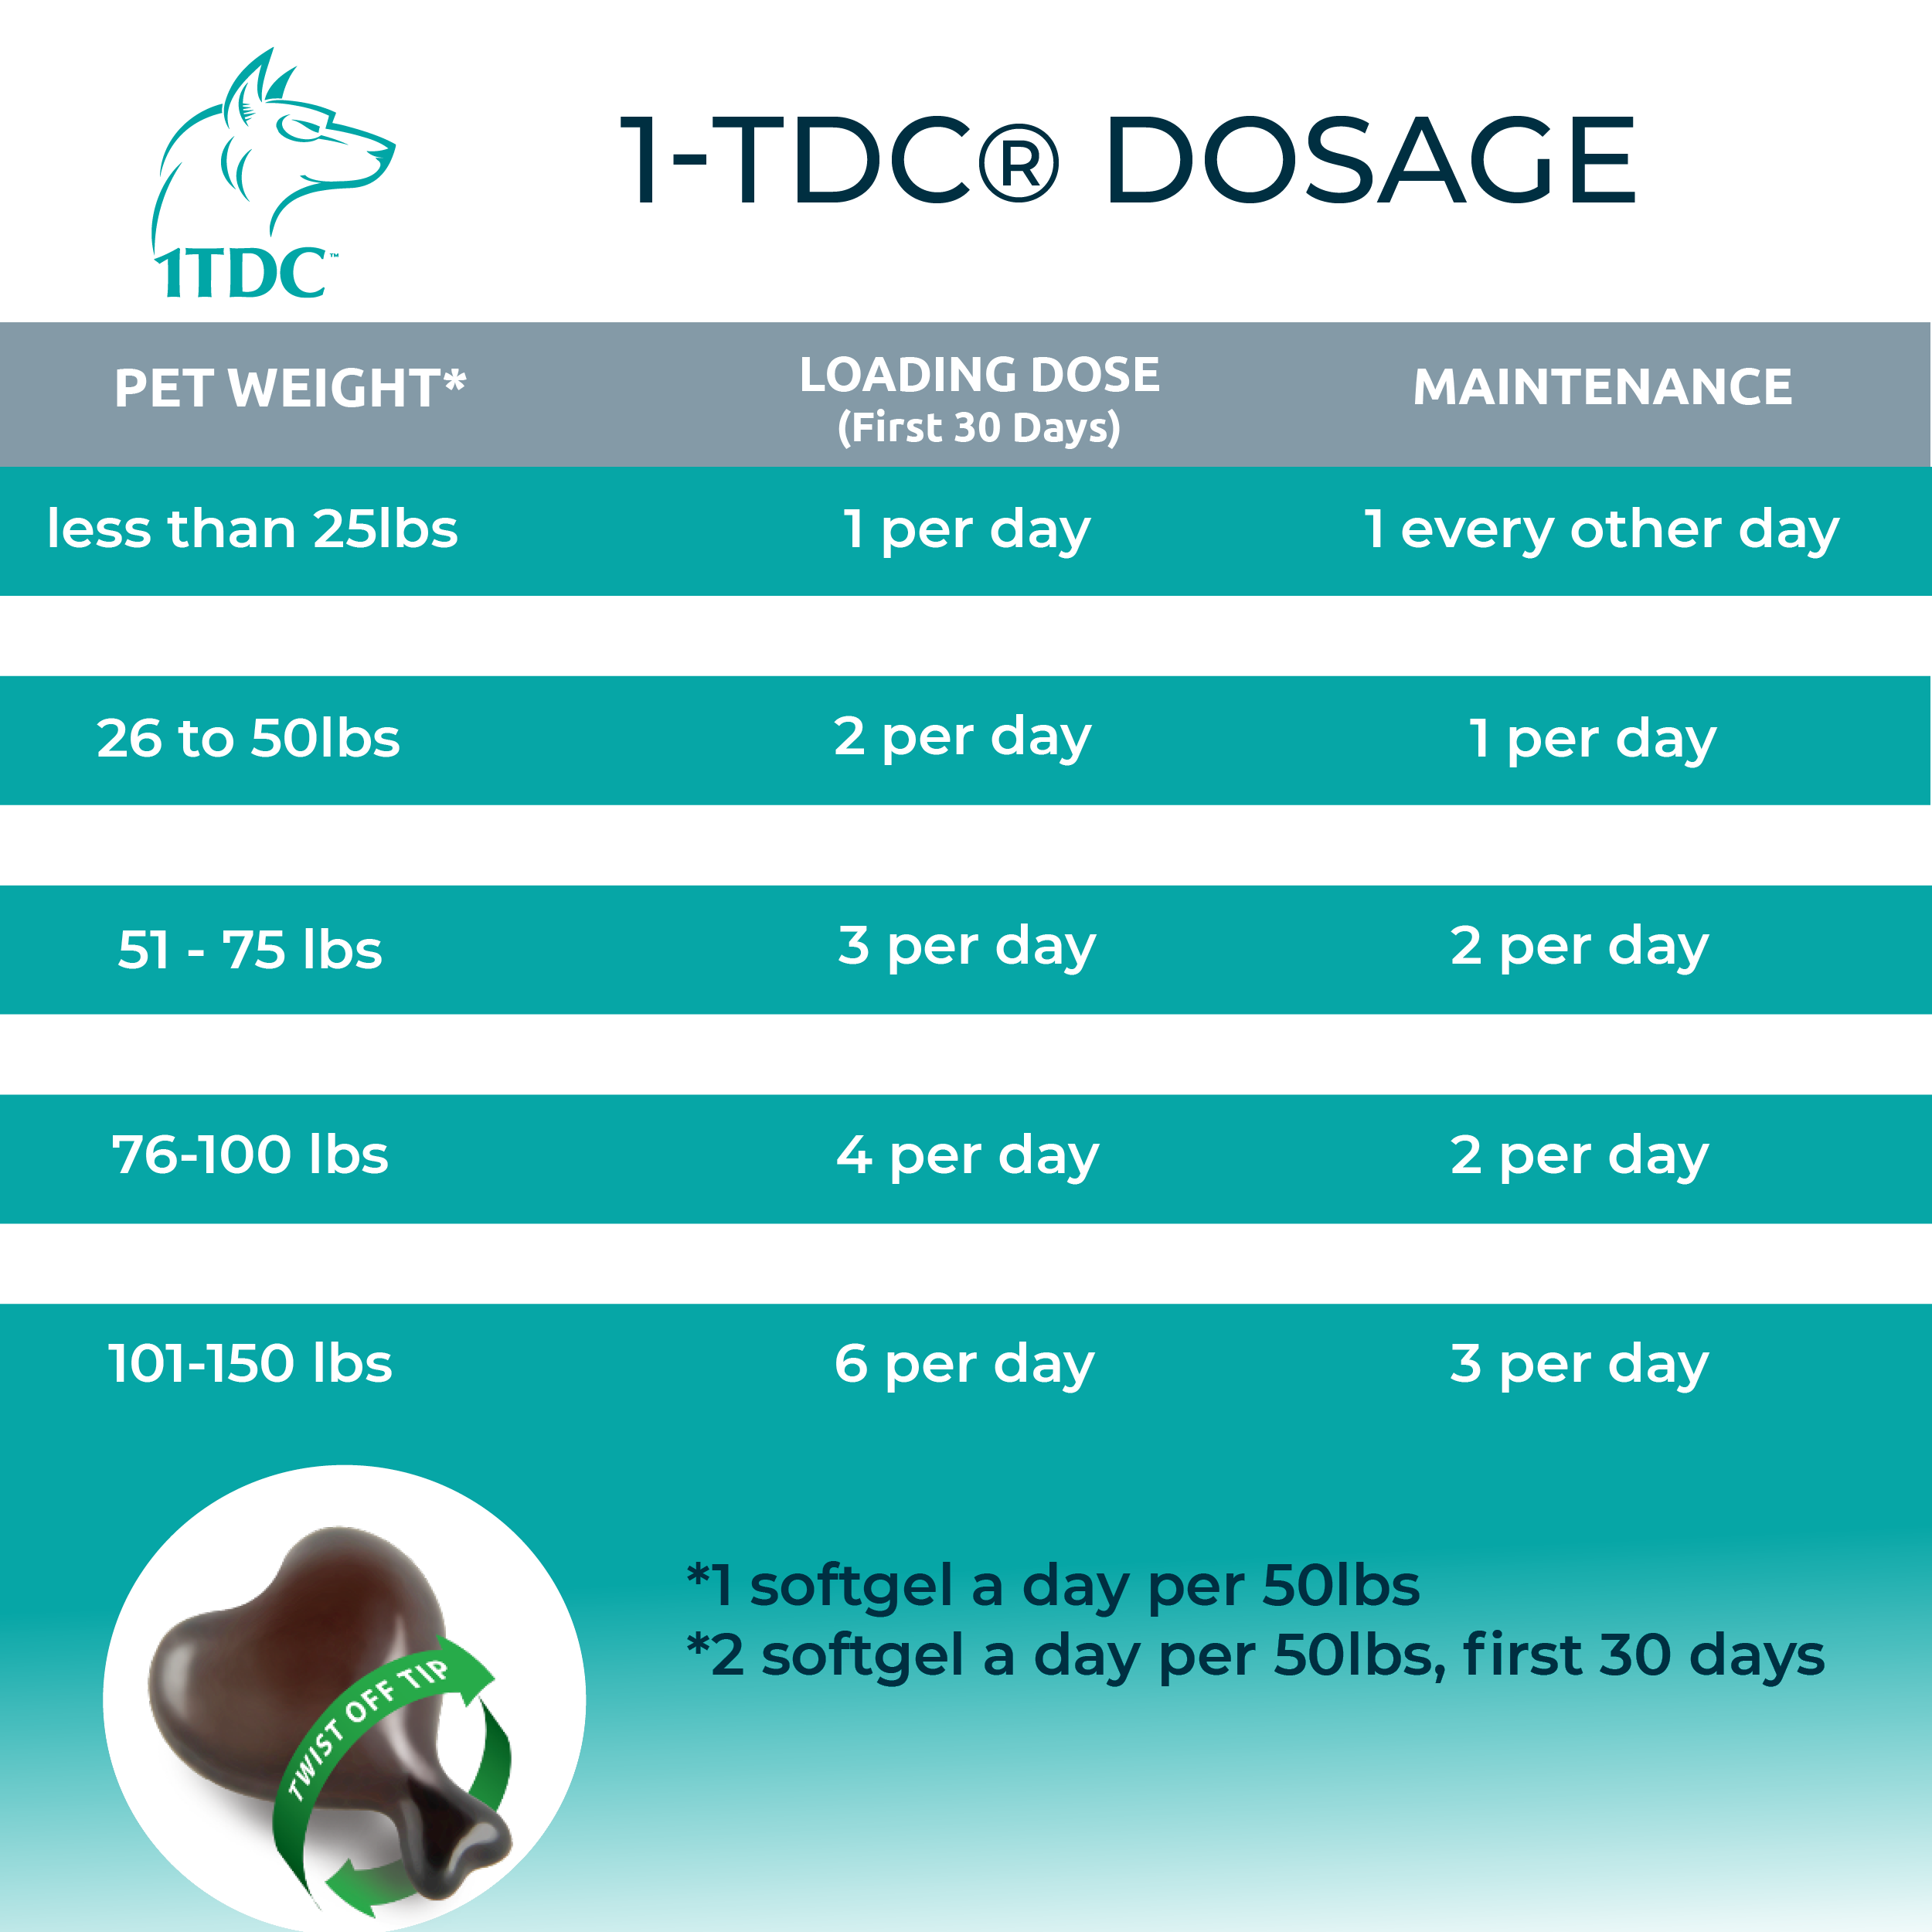 1-TDC dosage chart for dogs